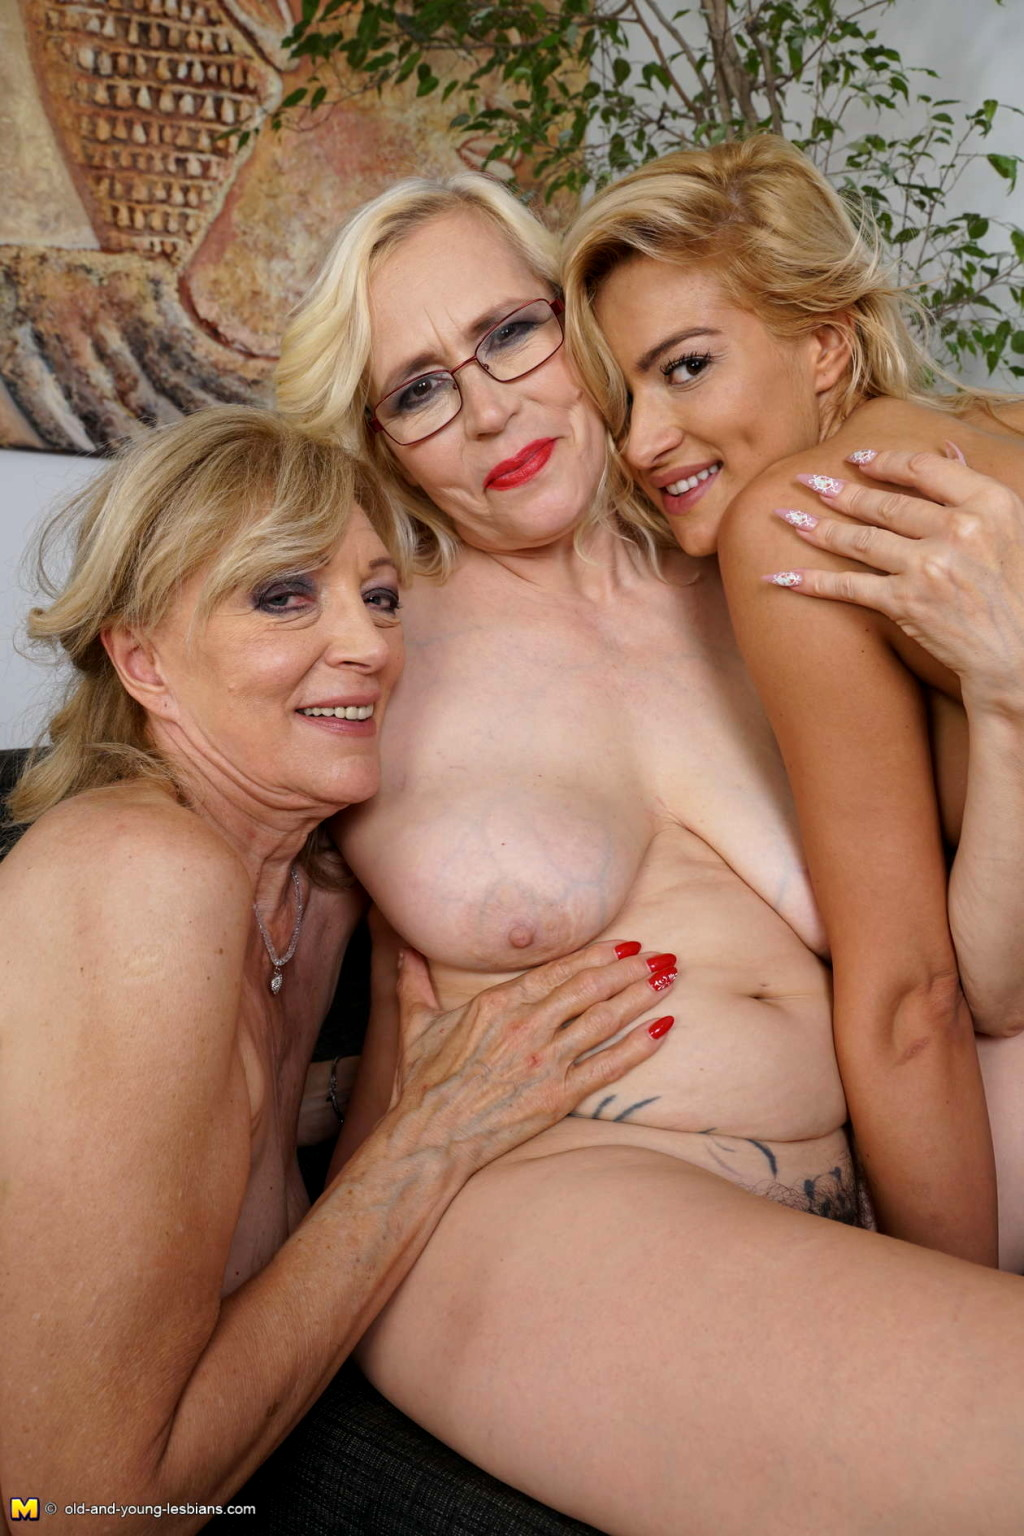 Granny lesbian threesome with